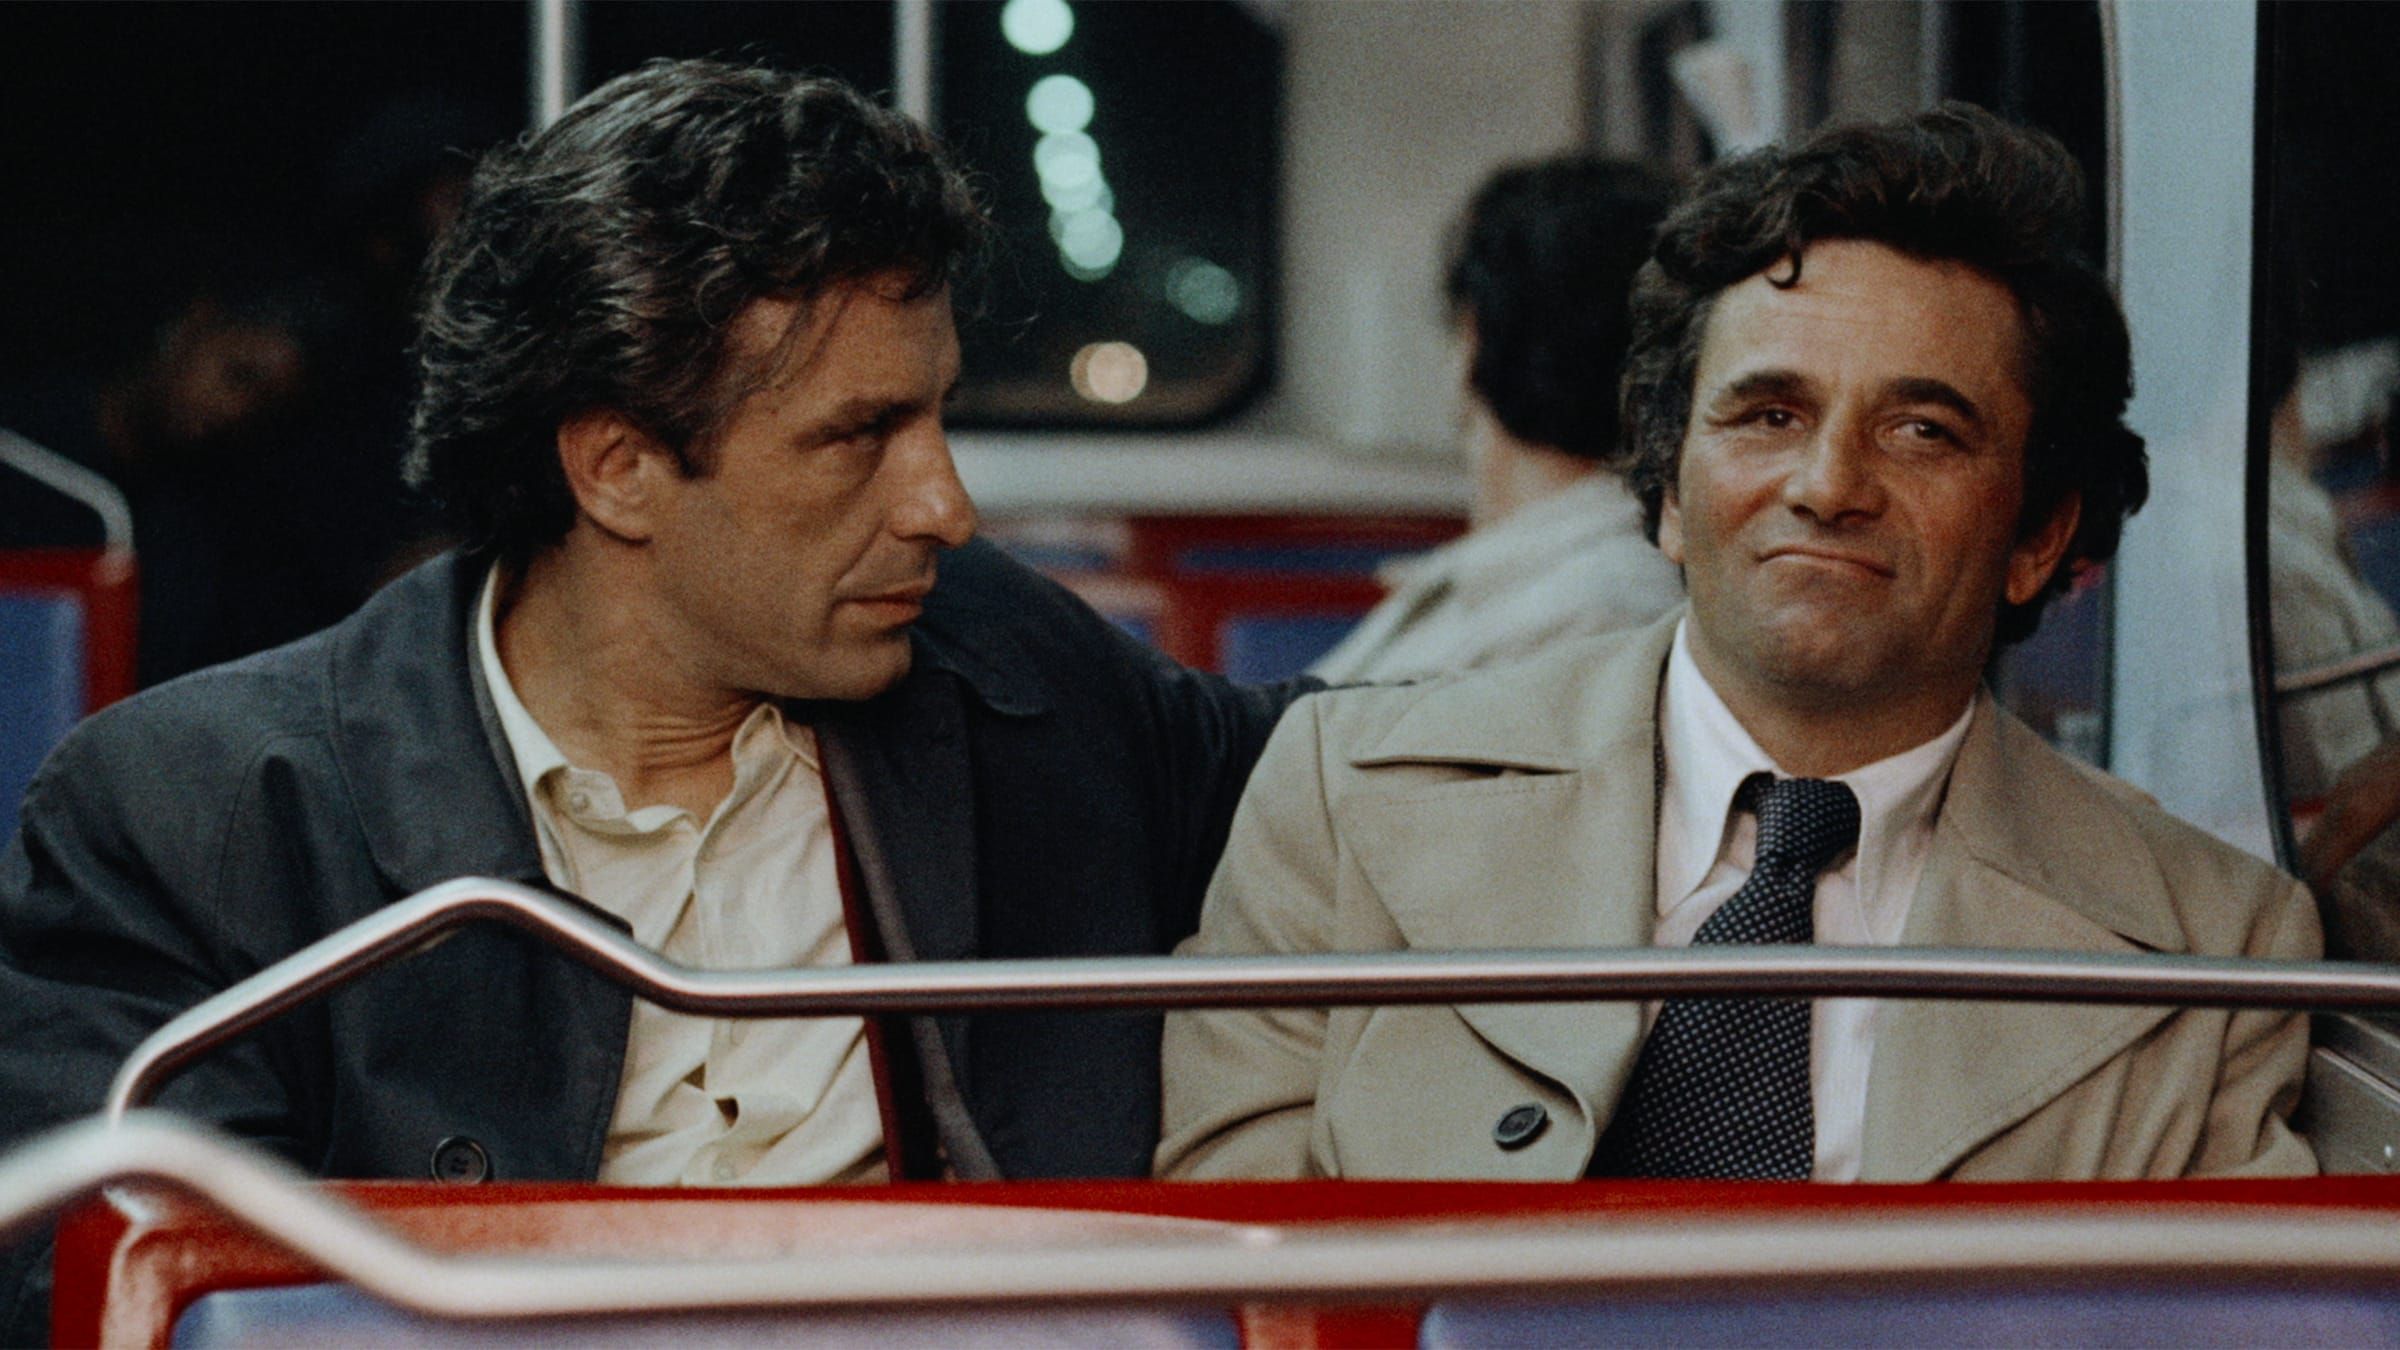 John Cassavetes (left) and Peter Falk (right) in  Mikey and Nicky